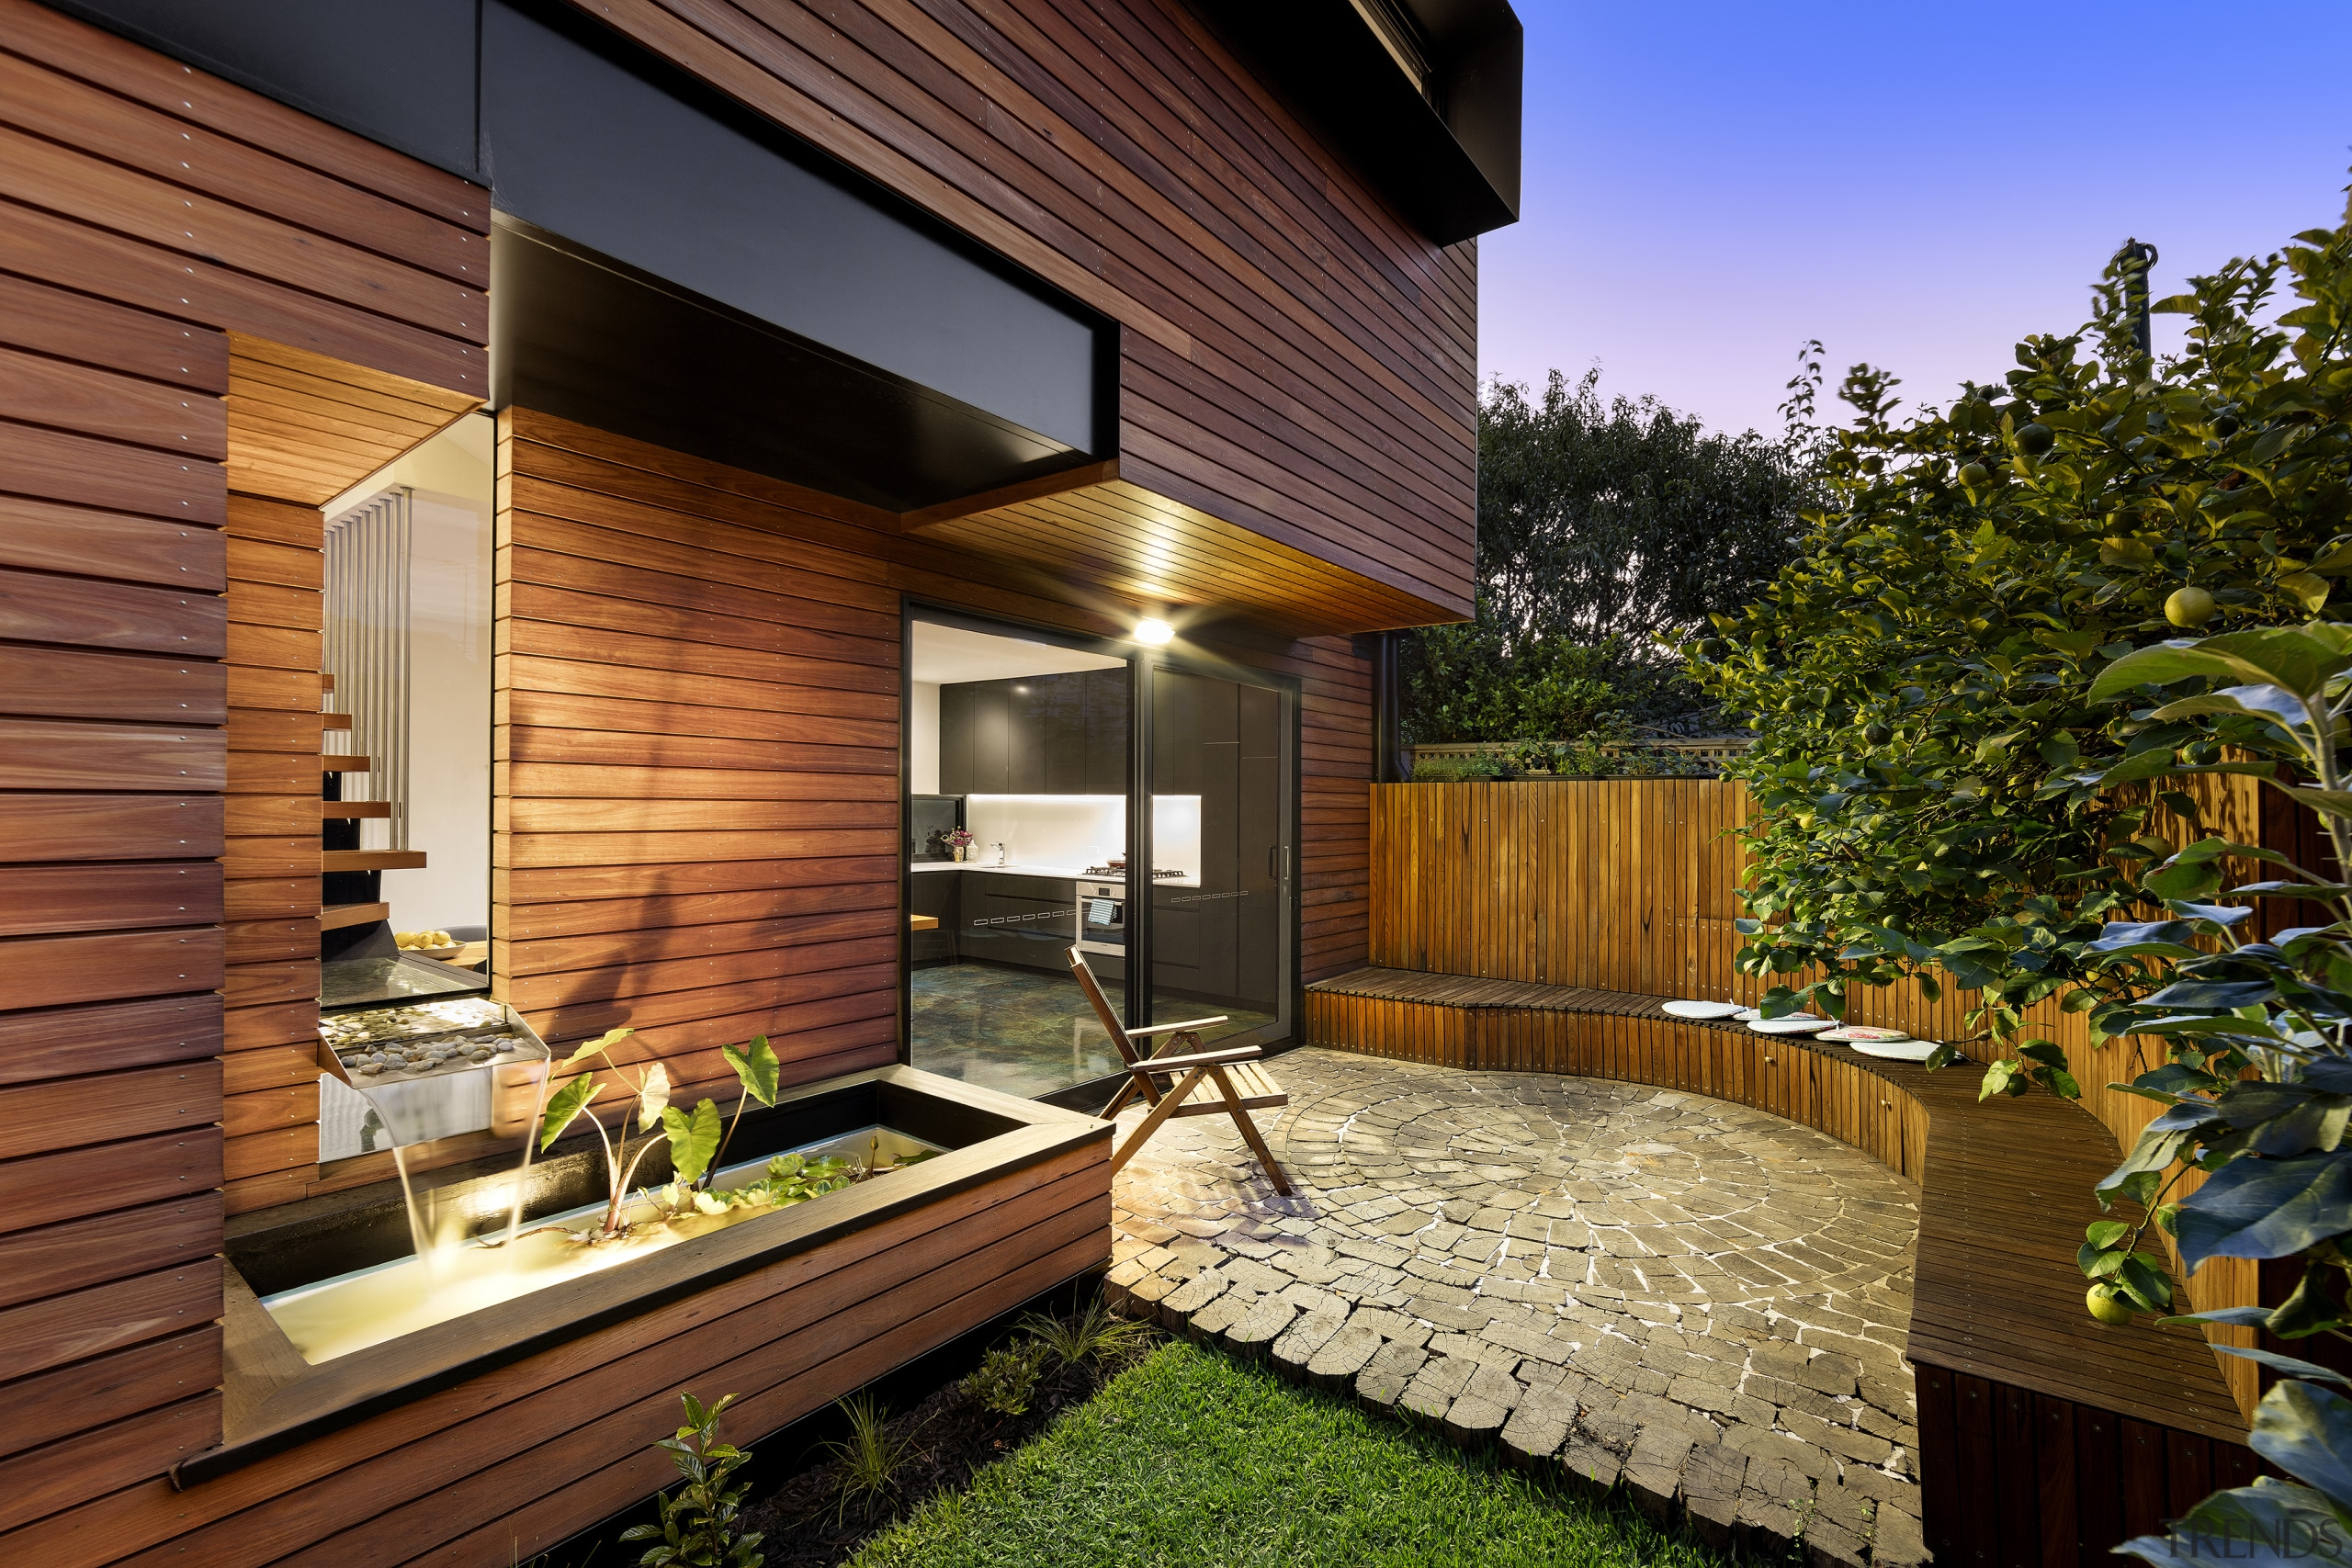 The challenge was fitting a two bedroom, two architecture, backyard, courtyard, deck, estate, facade, home, house, interior design, outdoor structure, property, real estate, residential area, roof, siding, wood, yard, brown